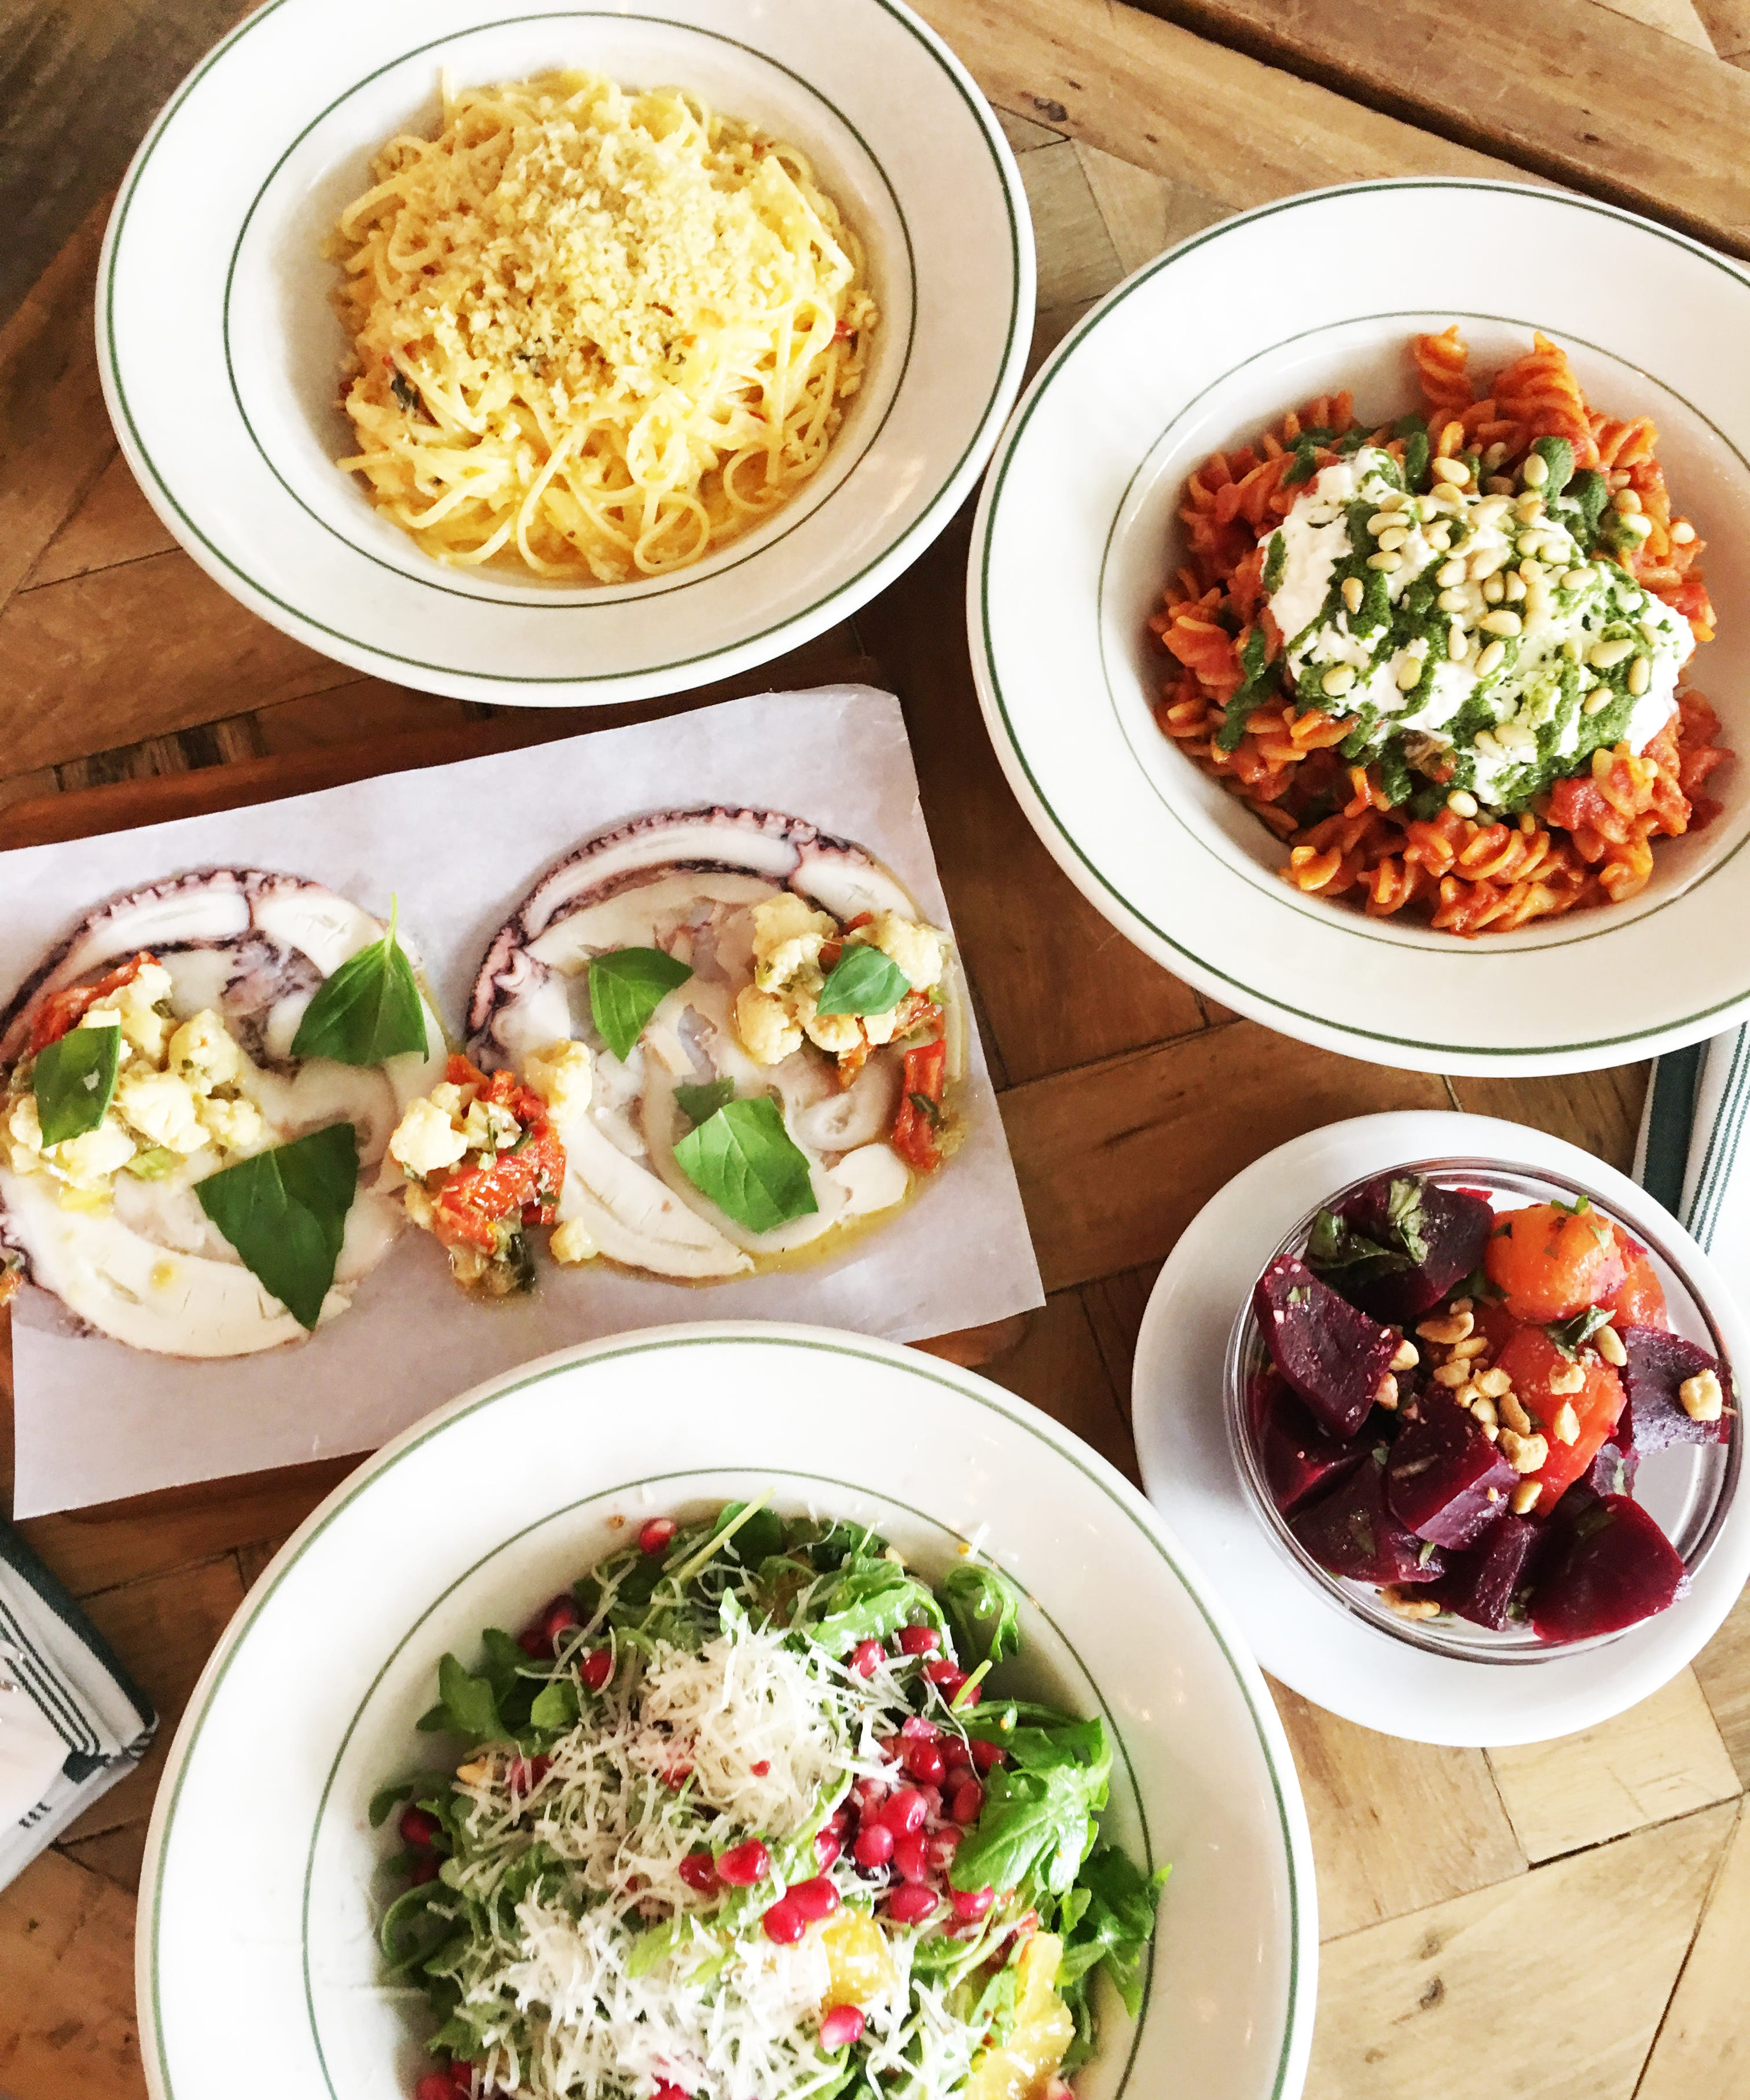 Best Hidden Gems Restaurants In Nyc To Eat Like A Local